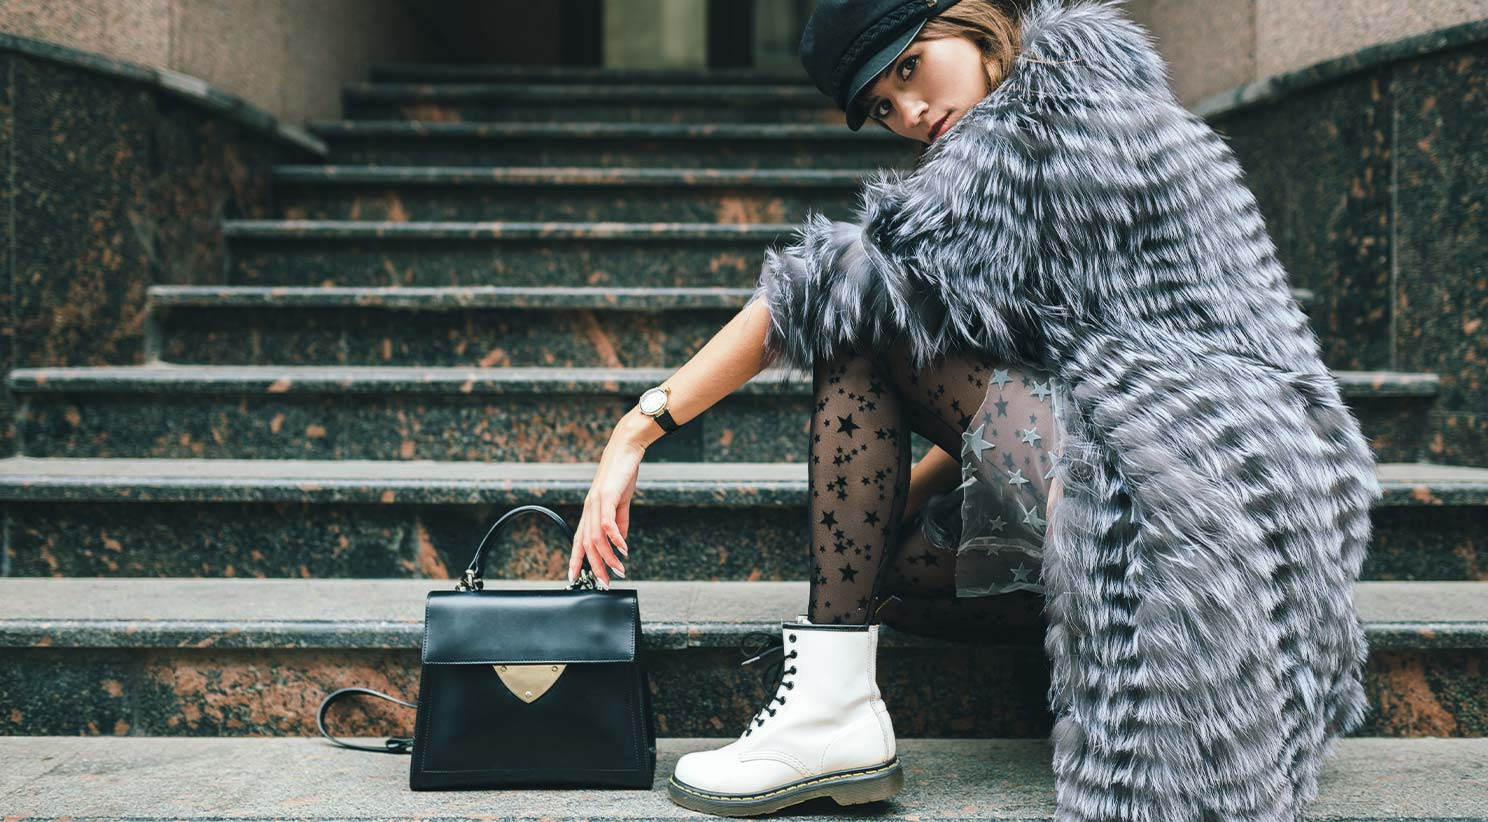 Model In A Fur Coat Posing For A Footwear Marketing Campaign